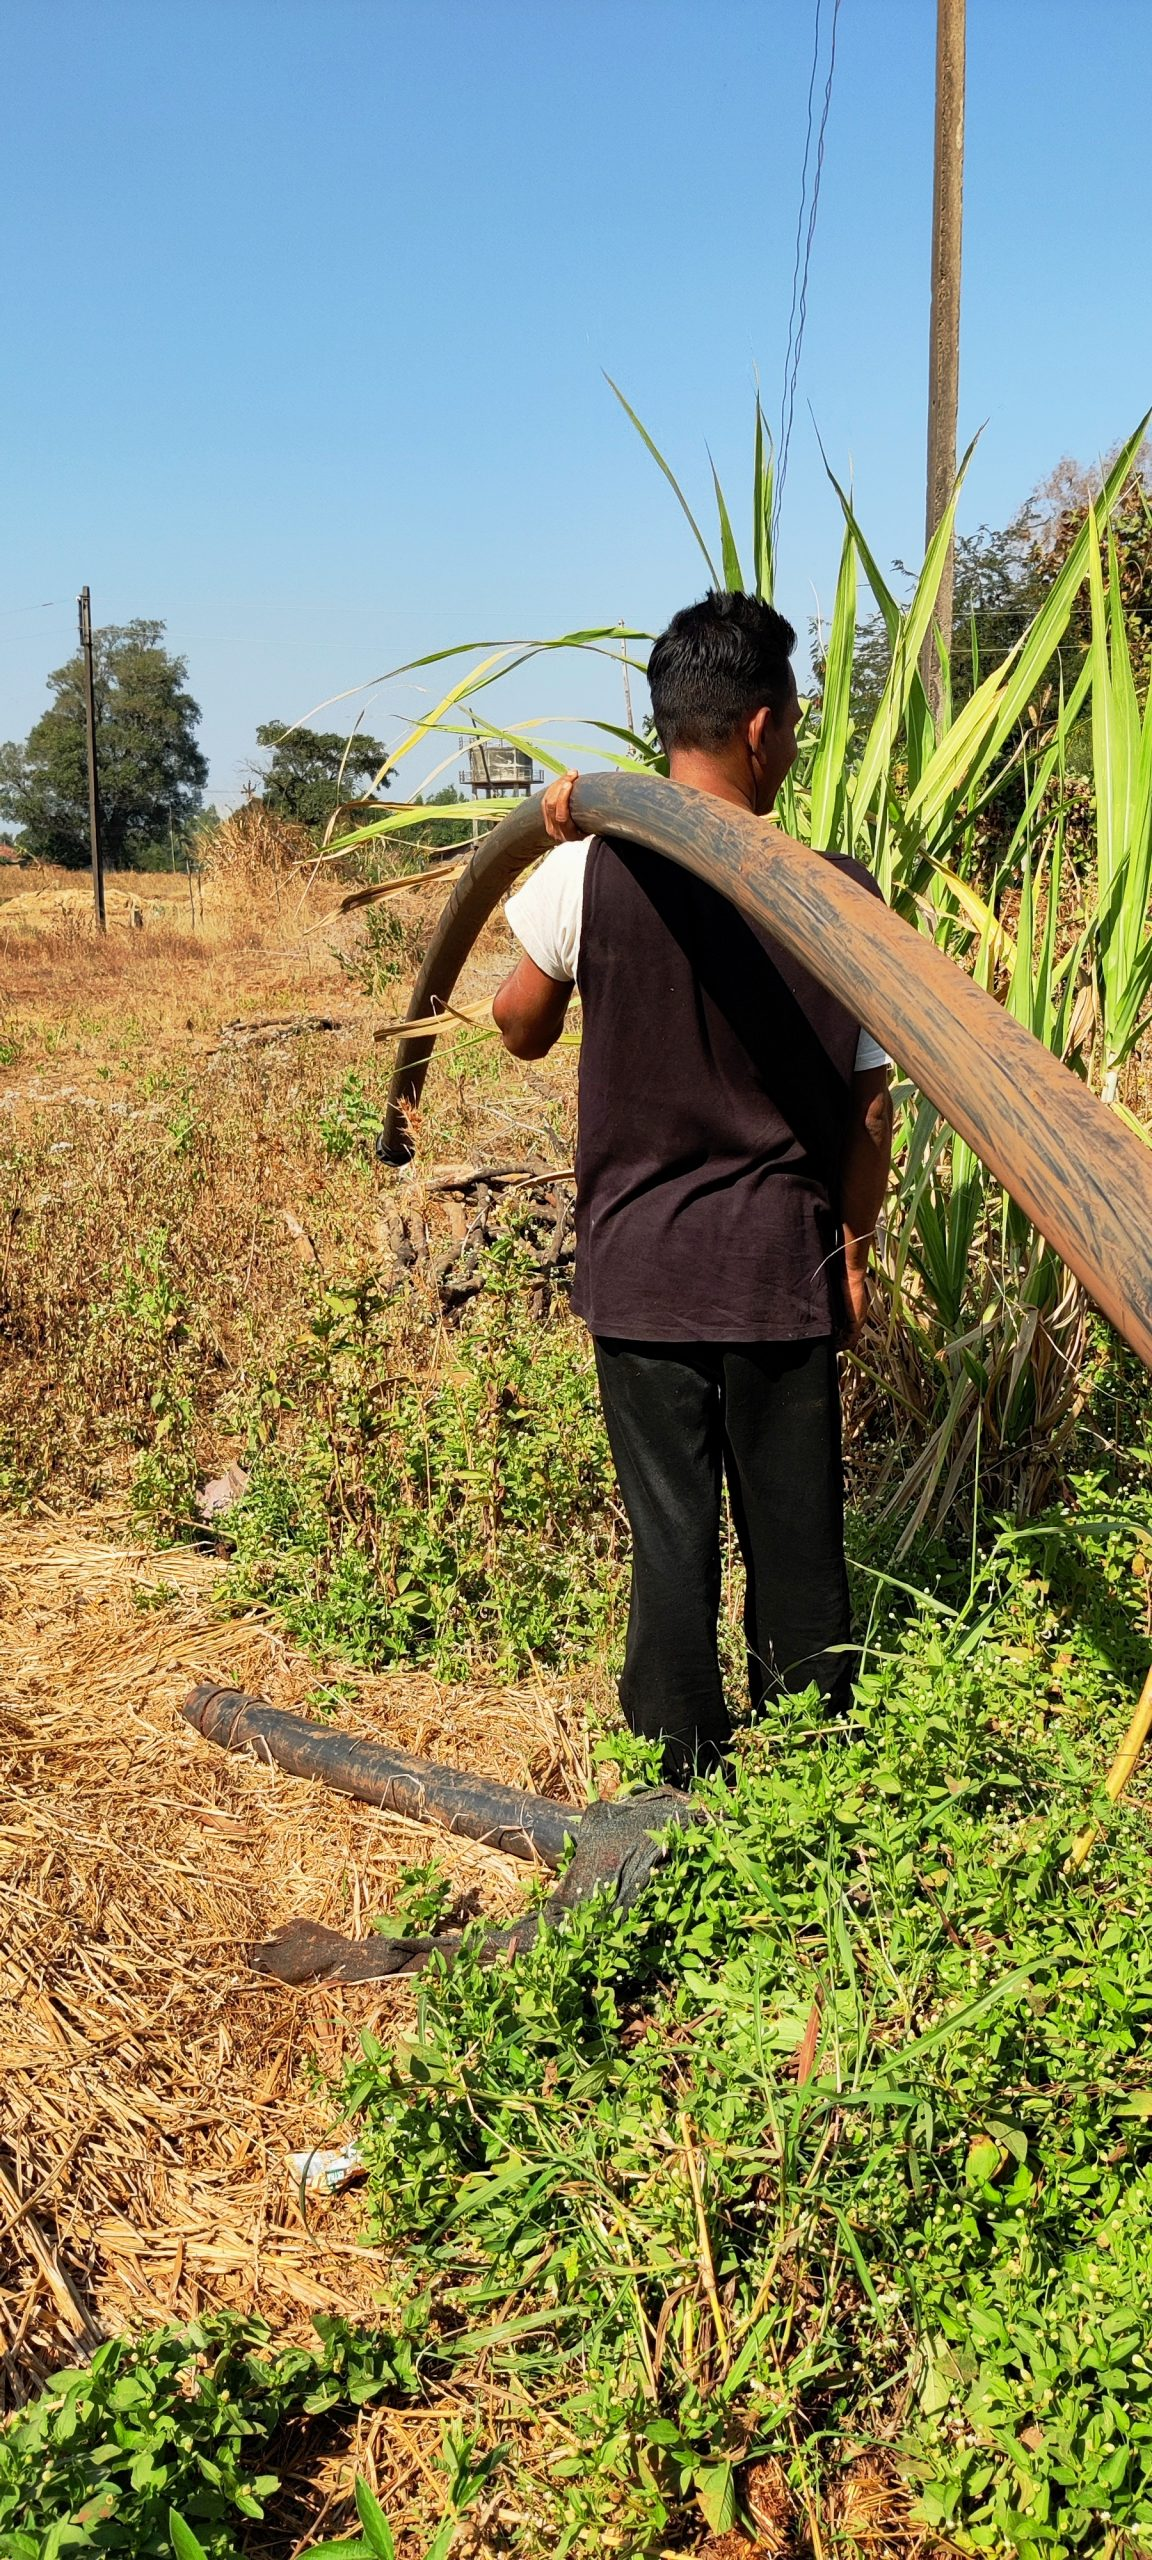 A farmer carrying irrigation pipes